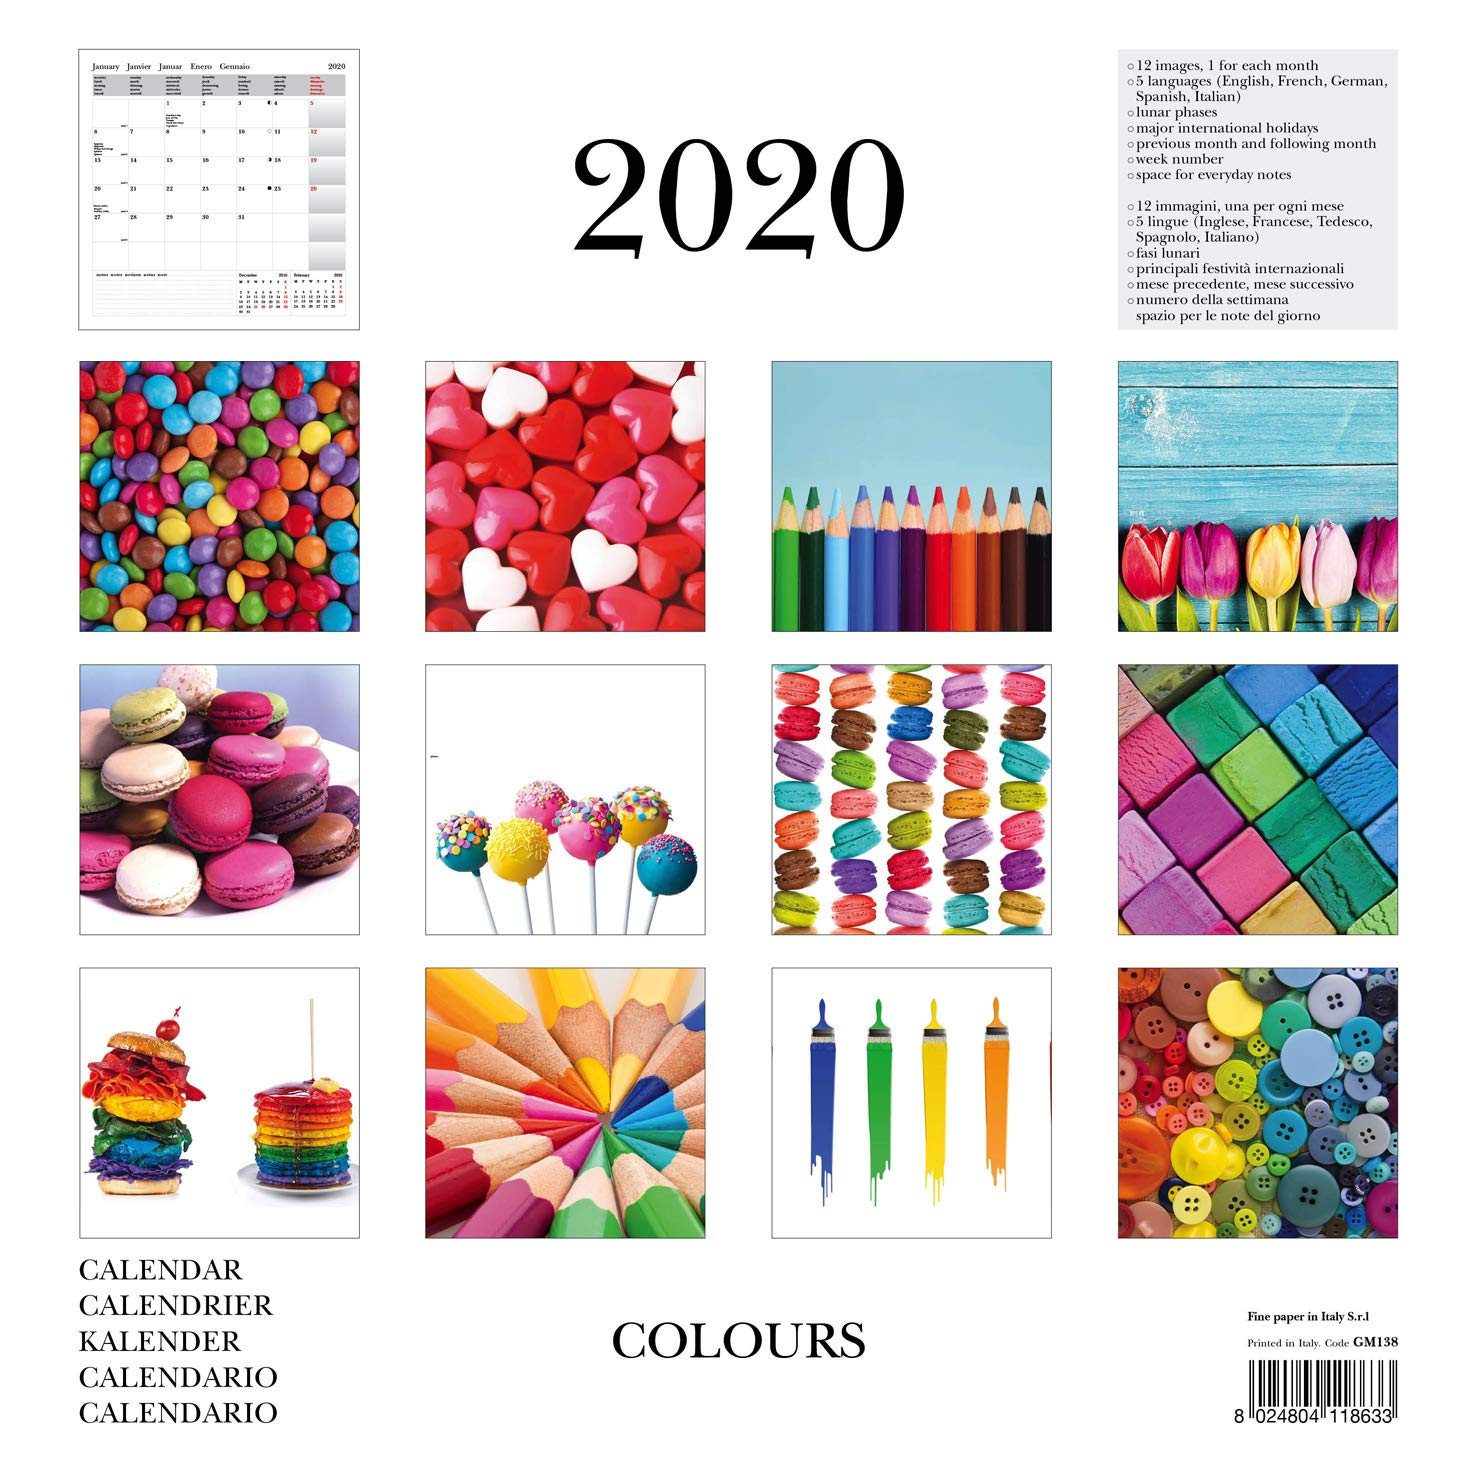 Calendario Fasi Lunari 2020.Calendario Da Parete 2020 Colours 30x30 Cm Gm138 Amazon